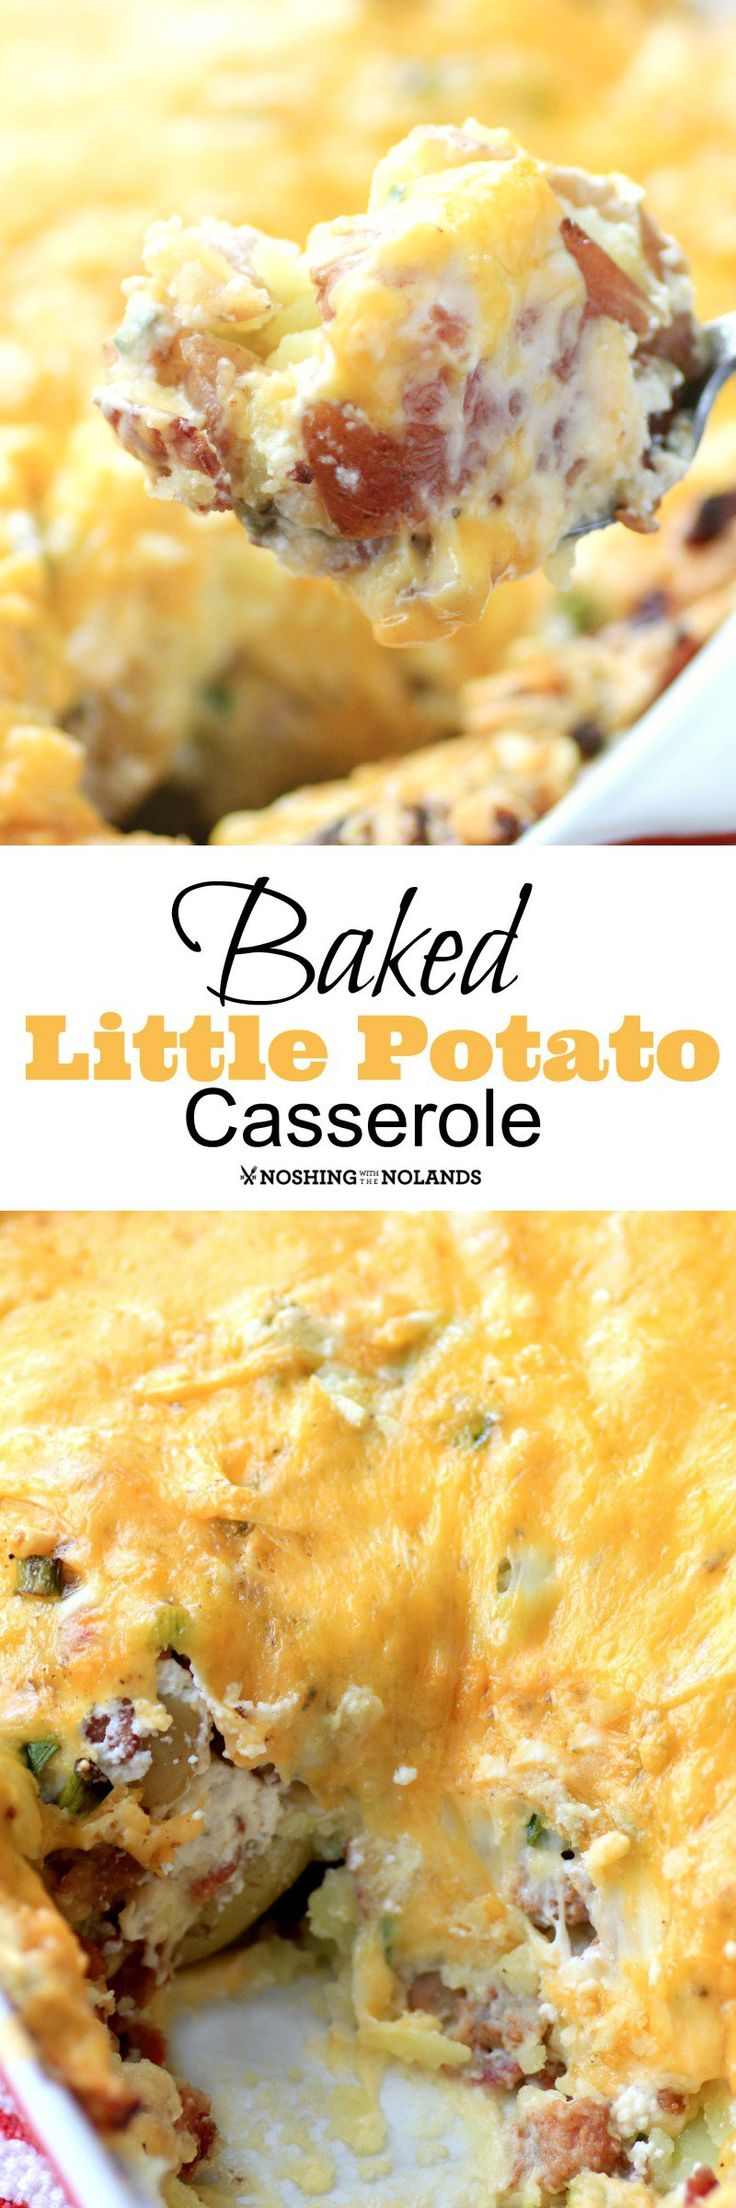 MWM Baked Little Potato Casserole by Noshing With The Nolands is a lightened dish made with Creamer potatoes and cheese! Easy to make this would be a perfect side dish for Easter!